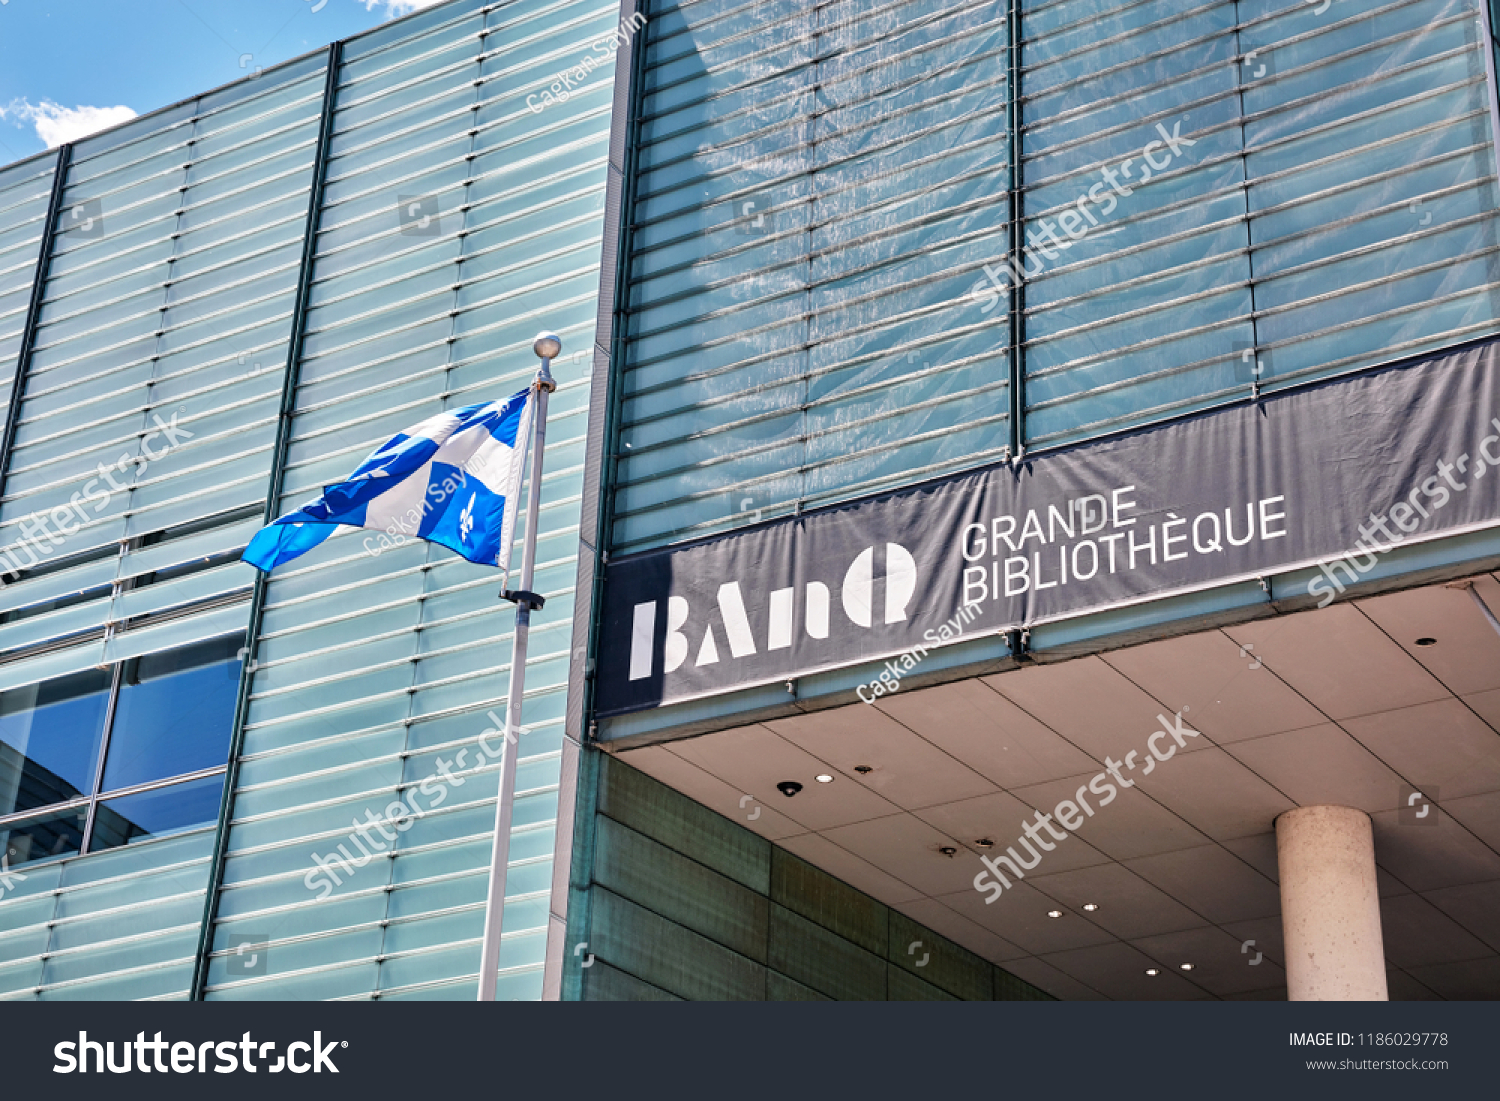 Bibliotheque Grande Montreal Canada June 2018 Ban Q Grande Stock Photo Edit Now